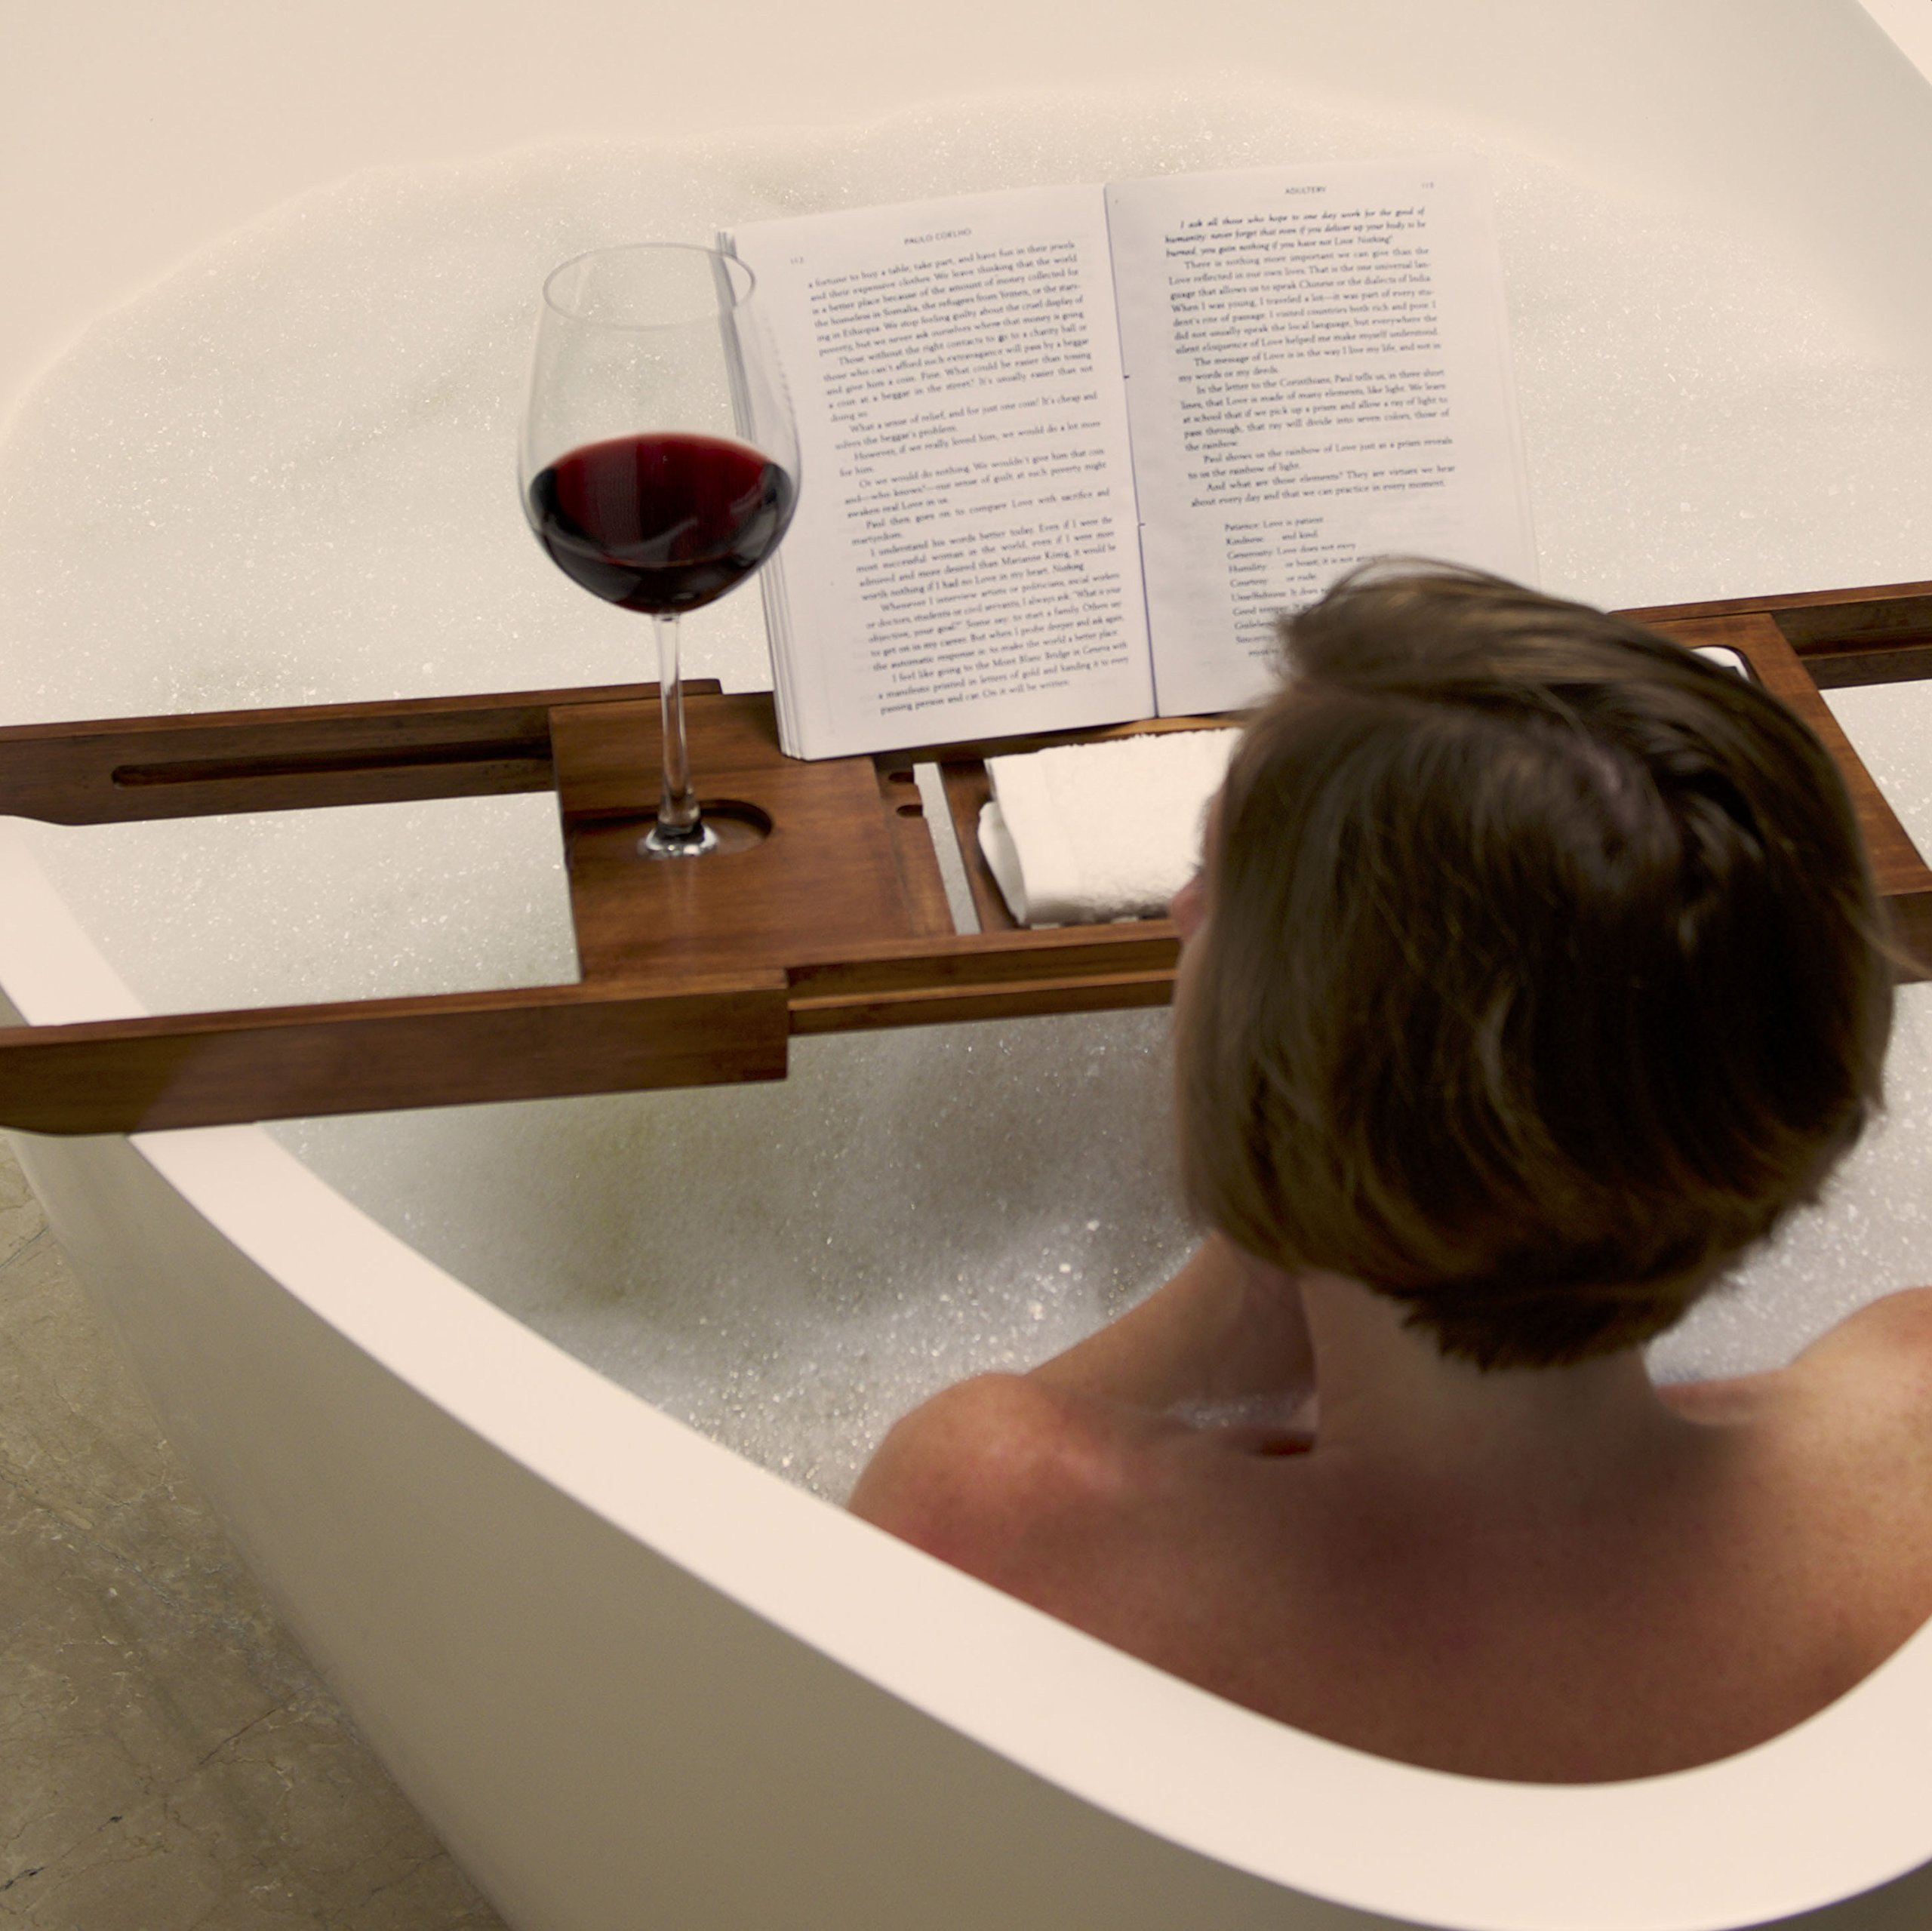 Luxury Dark Walnut Brown Bathtub Caddy, Natural Premium Bamboo Bath Tub Tray with Extending Sides, Reading Rack, Wine Glass, Book and Tablet Holder by Eden Bath (Image #8)